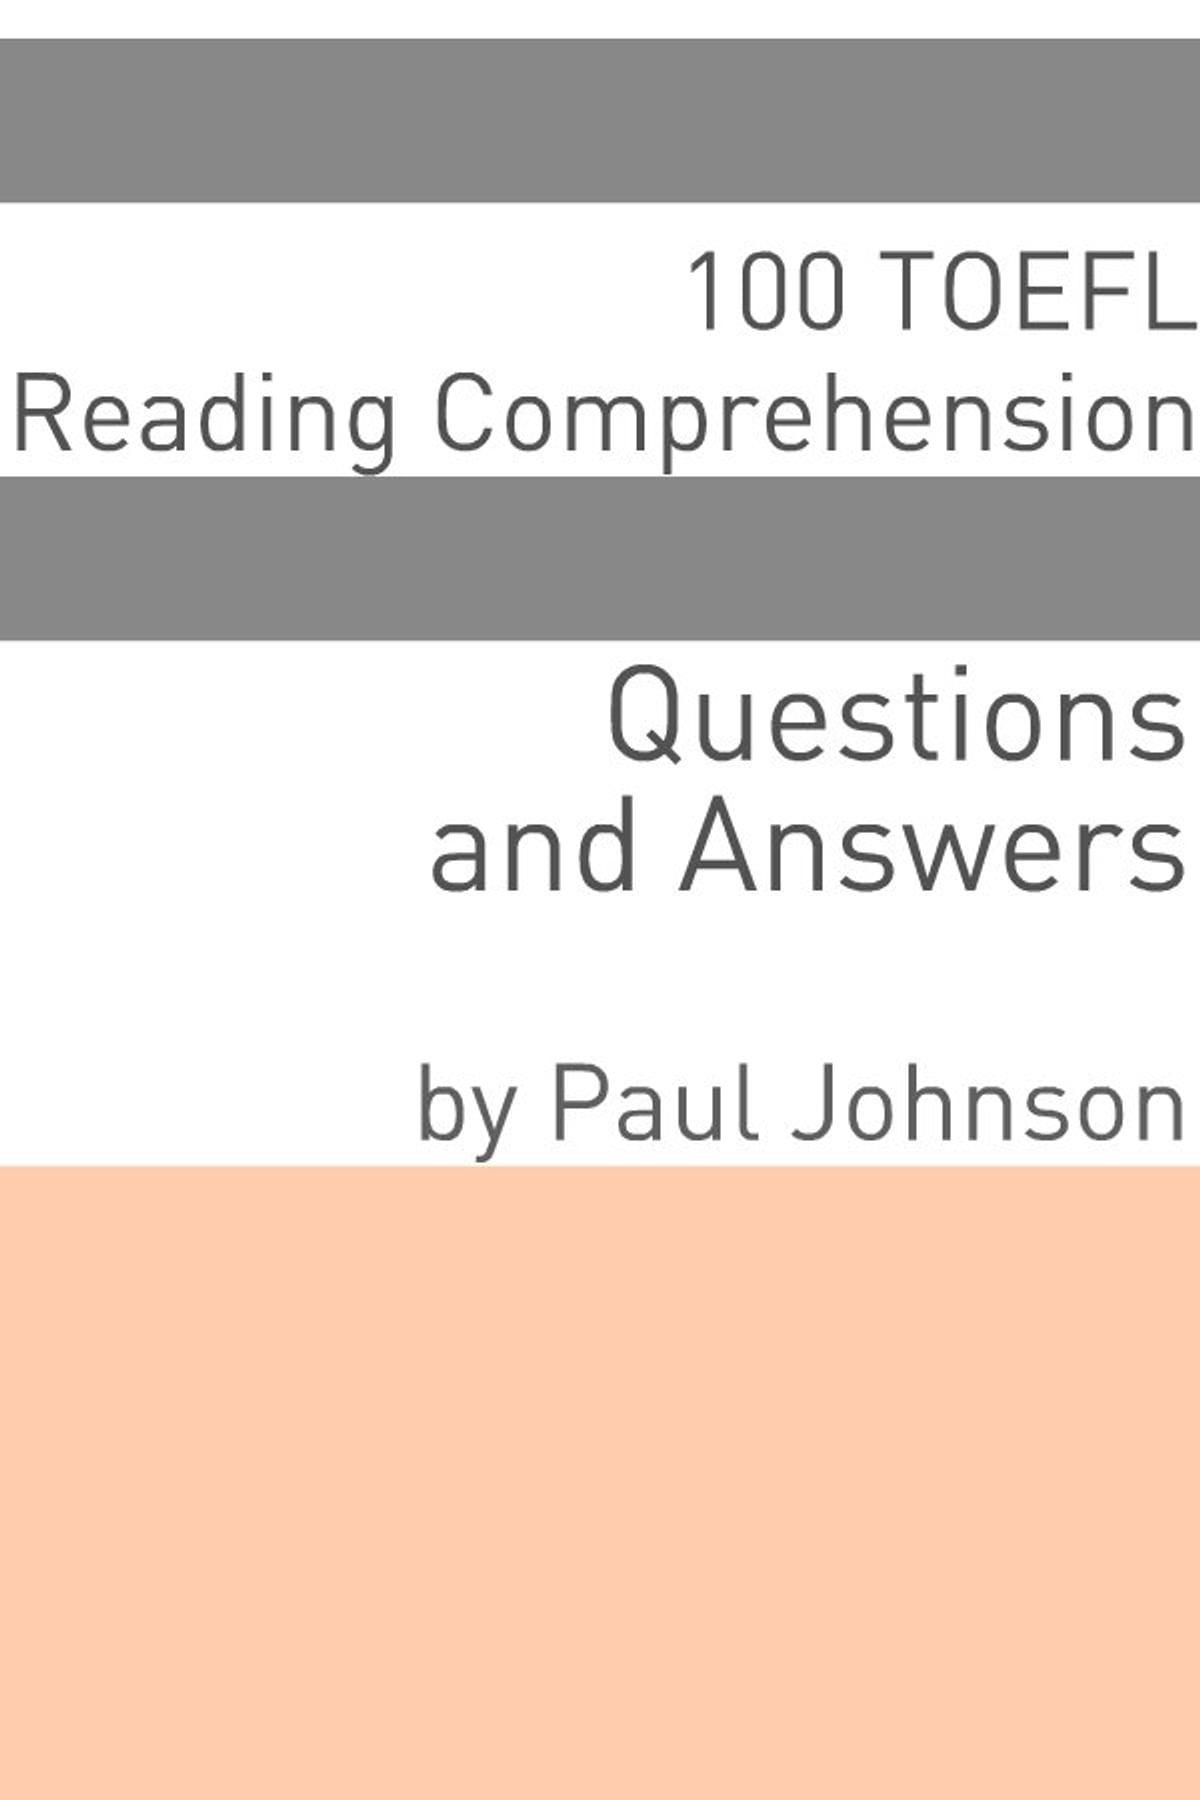 100 TOEFL Reading Comprehension Questions and Answers eBook by Minute Help  - 9781610427654 | Rakuten Kobo